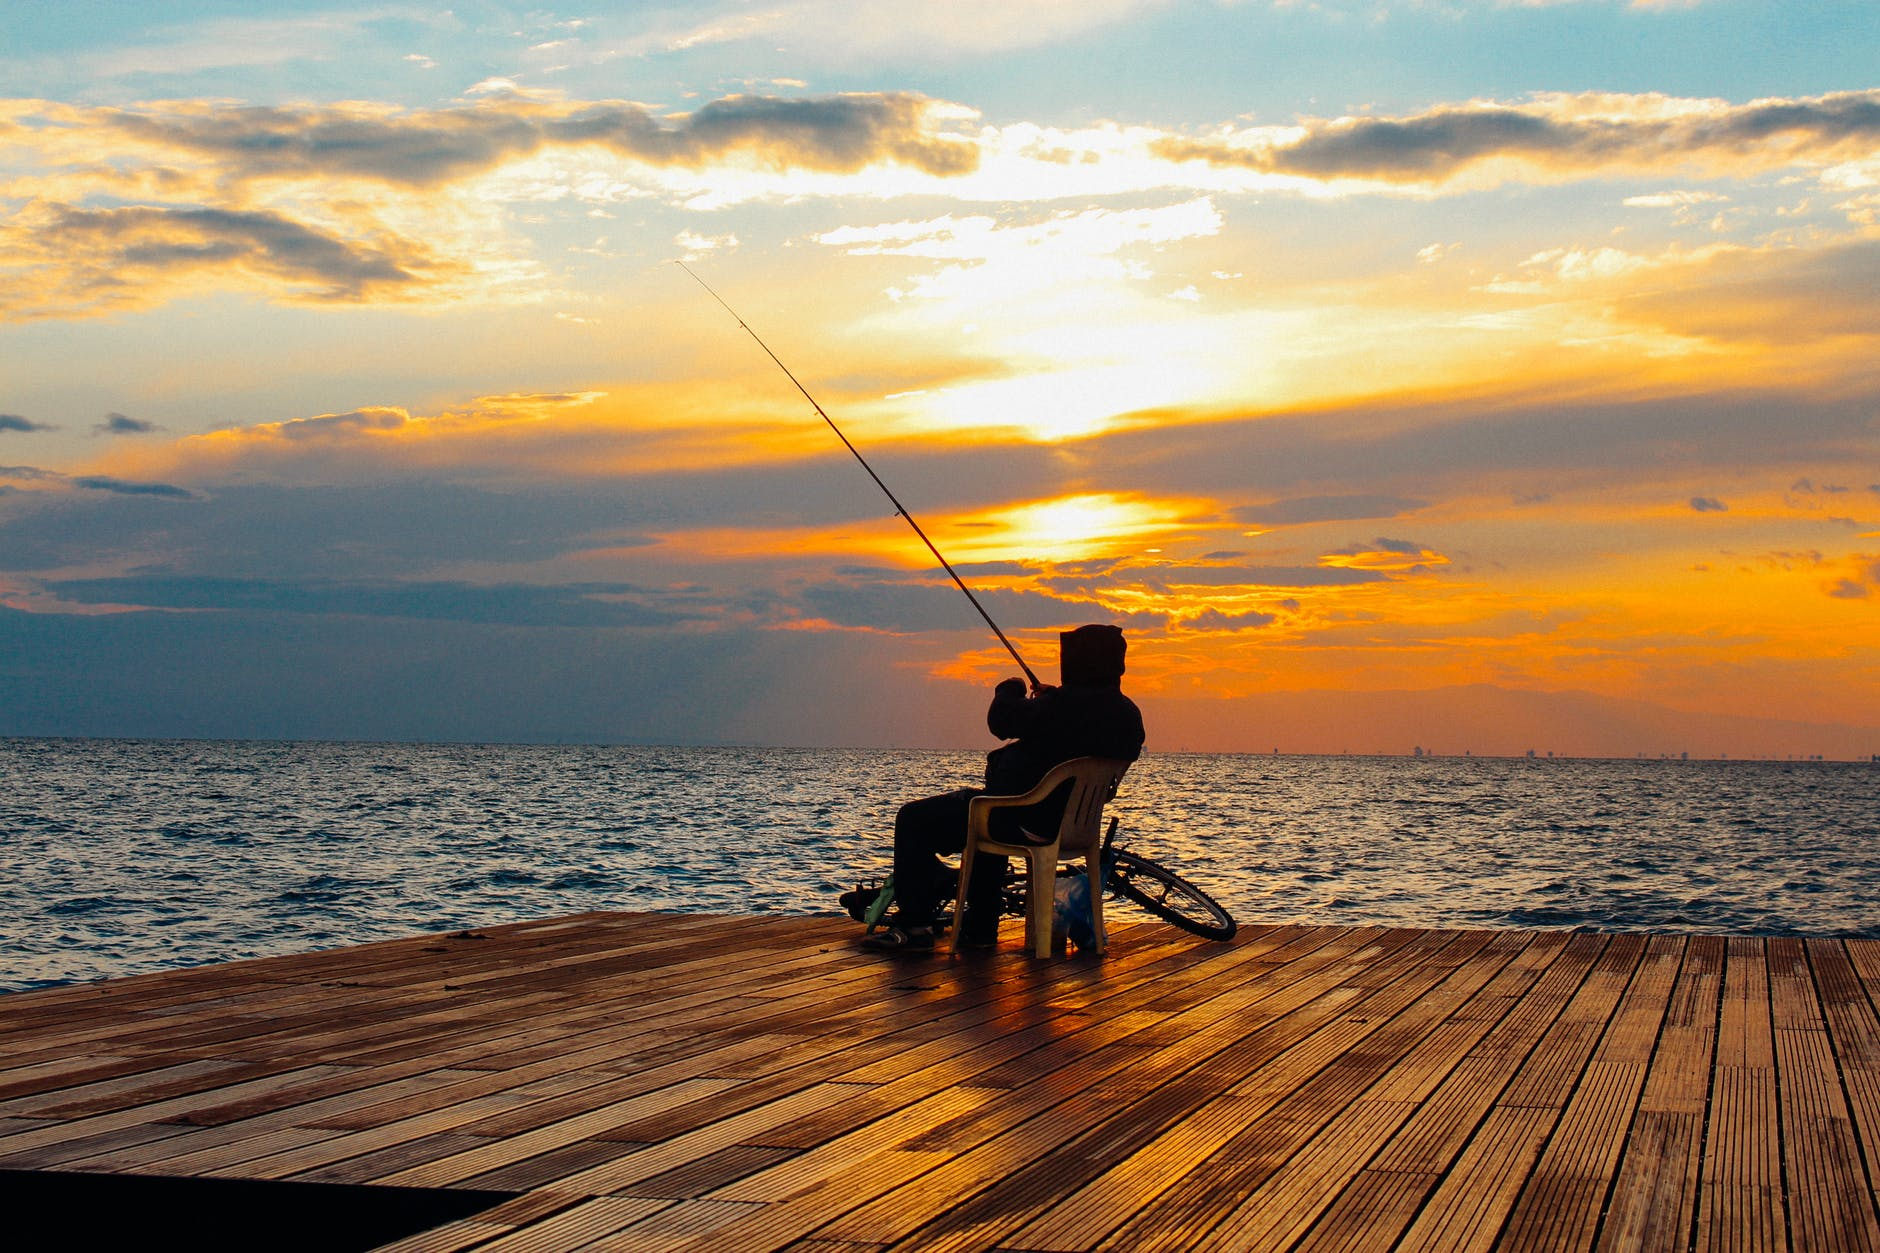 An introduction to Fishing in Portugal